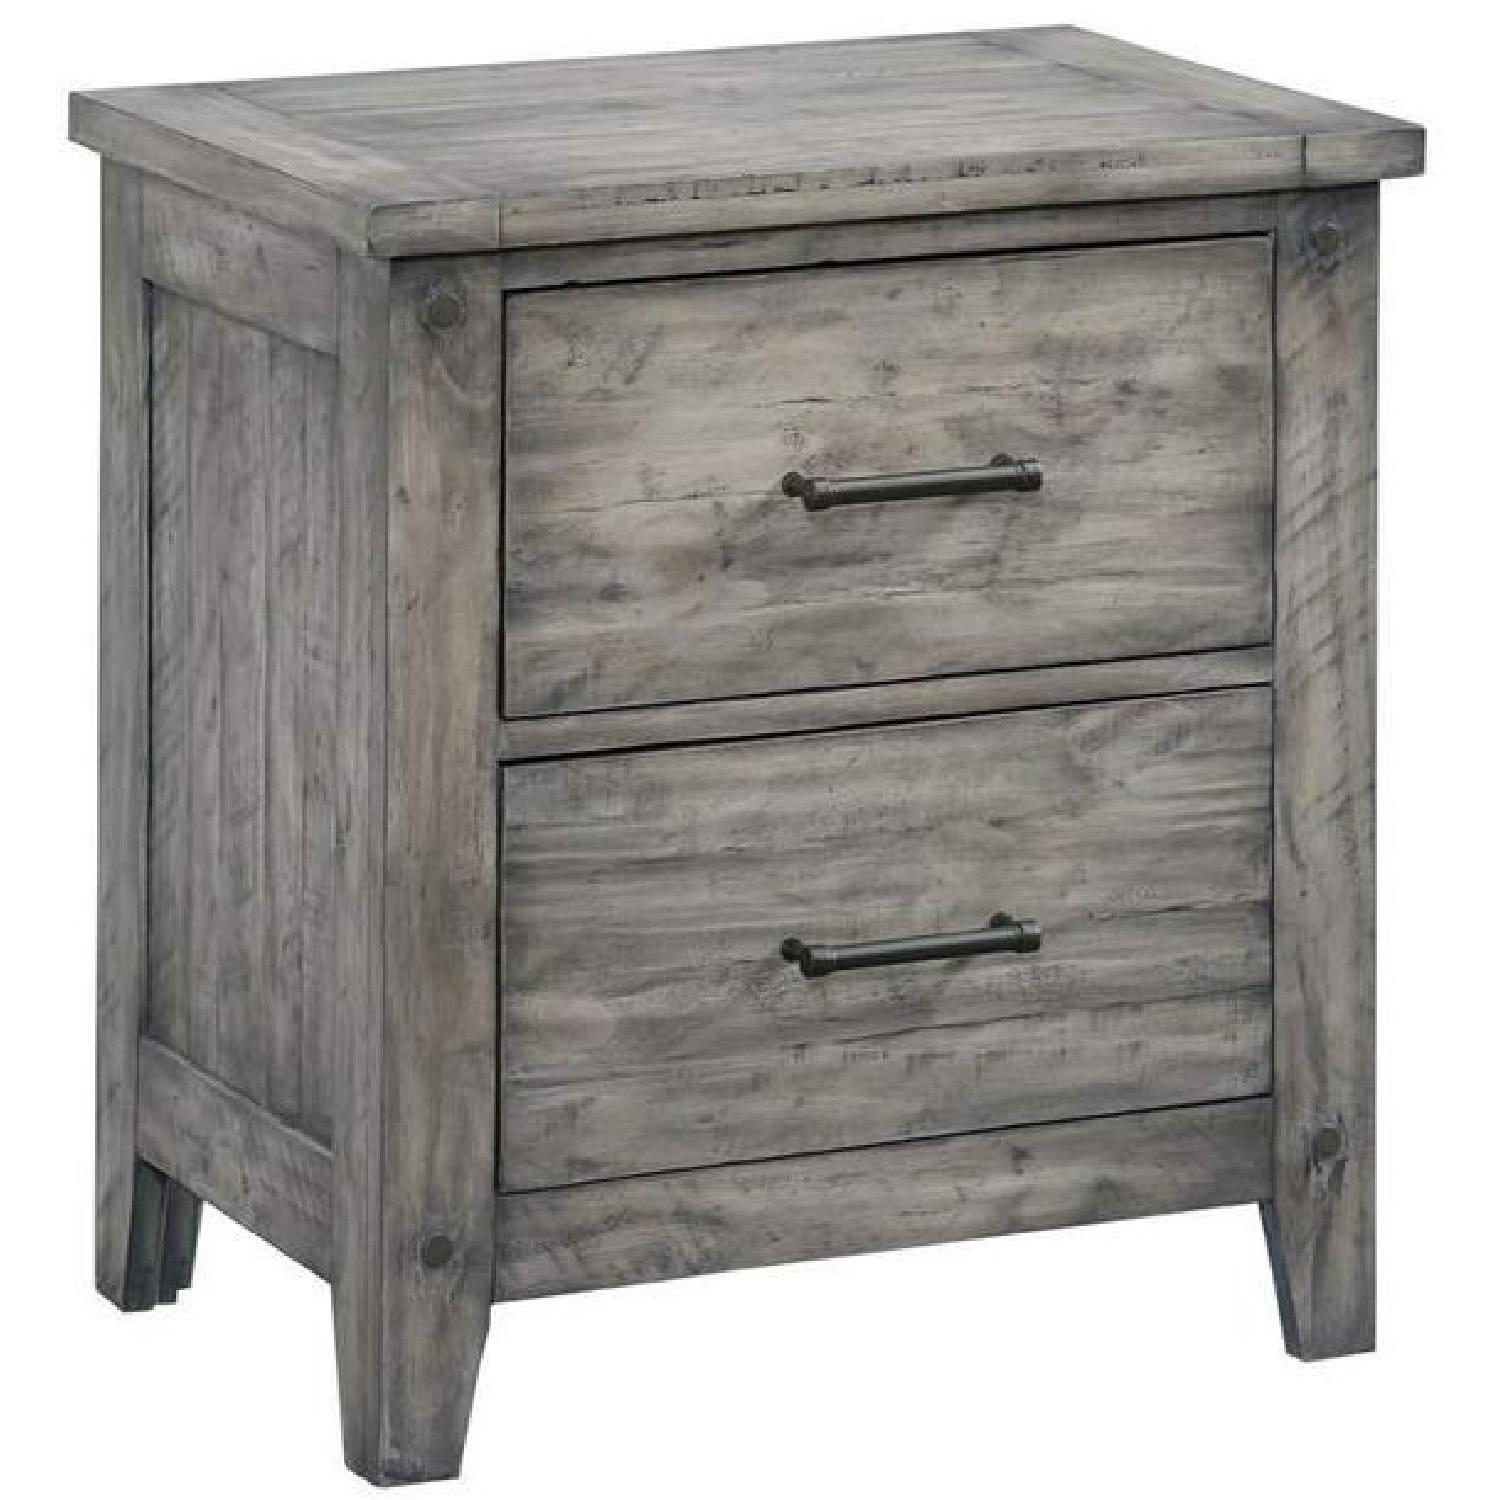 Loon Peak Burleigh 2 Drawer Nightstand - image-0